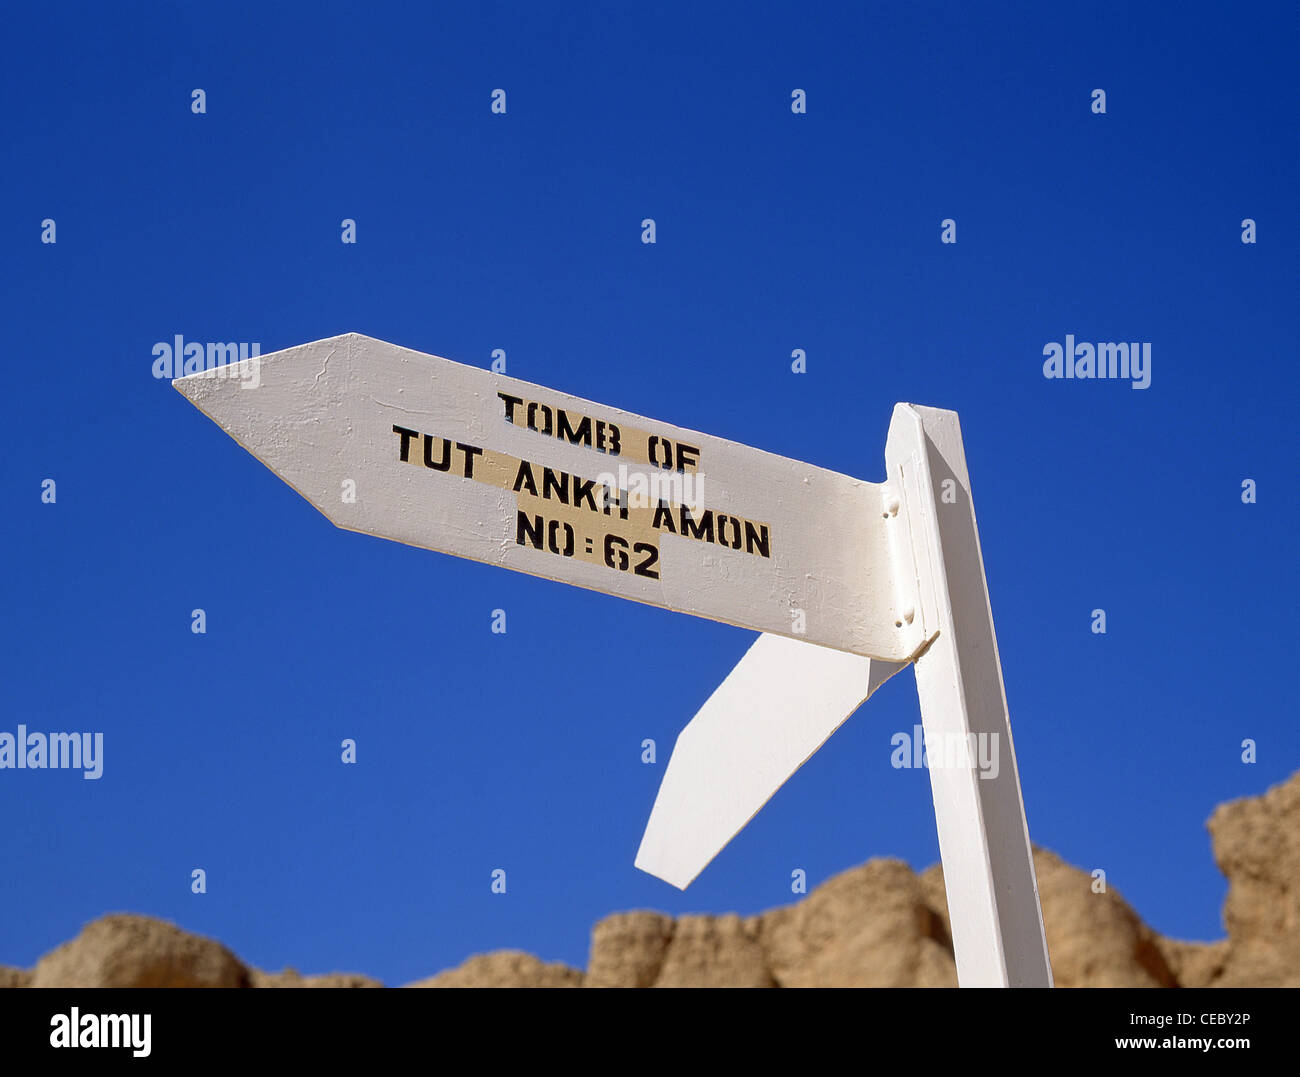 Sign to the Tomb of Tutankhamon, Valley of the Kings, Luxor, Luxor Governorate, Republic of Egypt - Stock Image